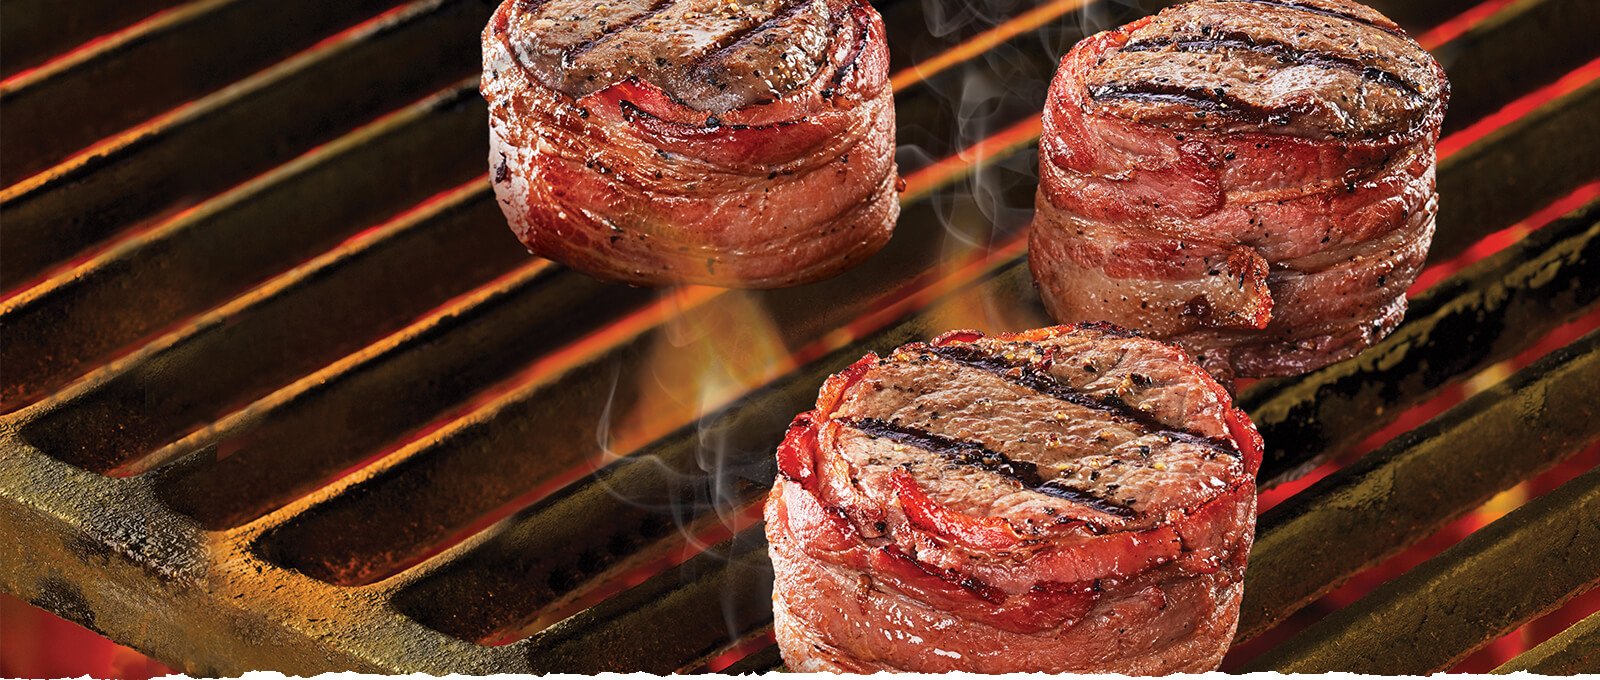 Black River beef medallions on grill